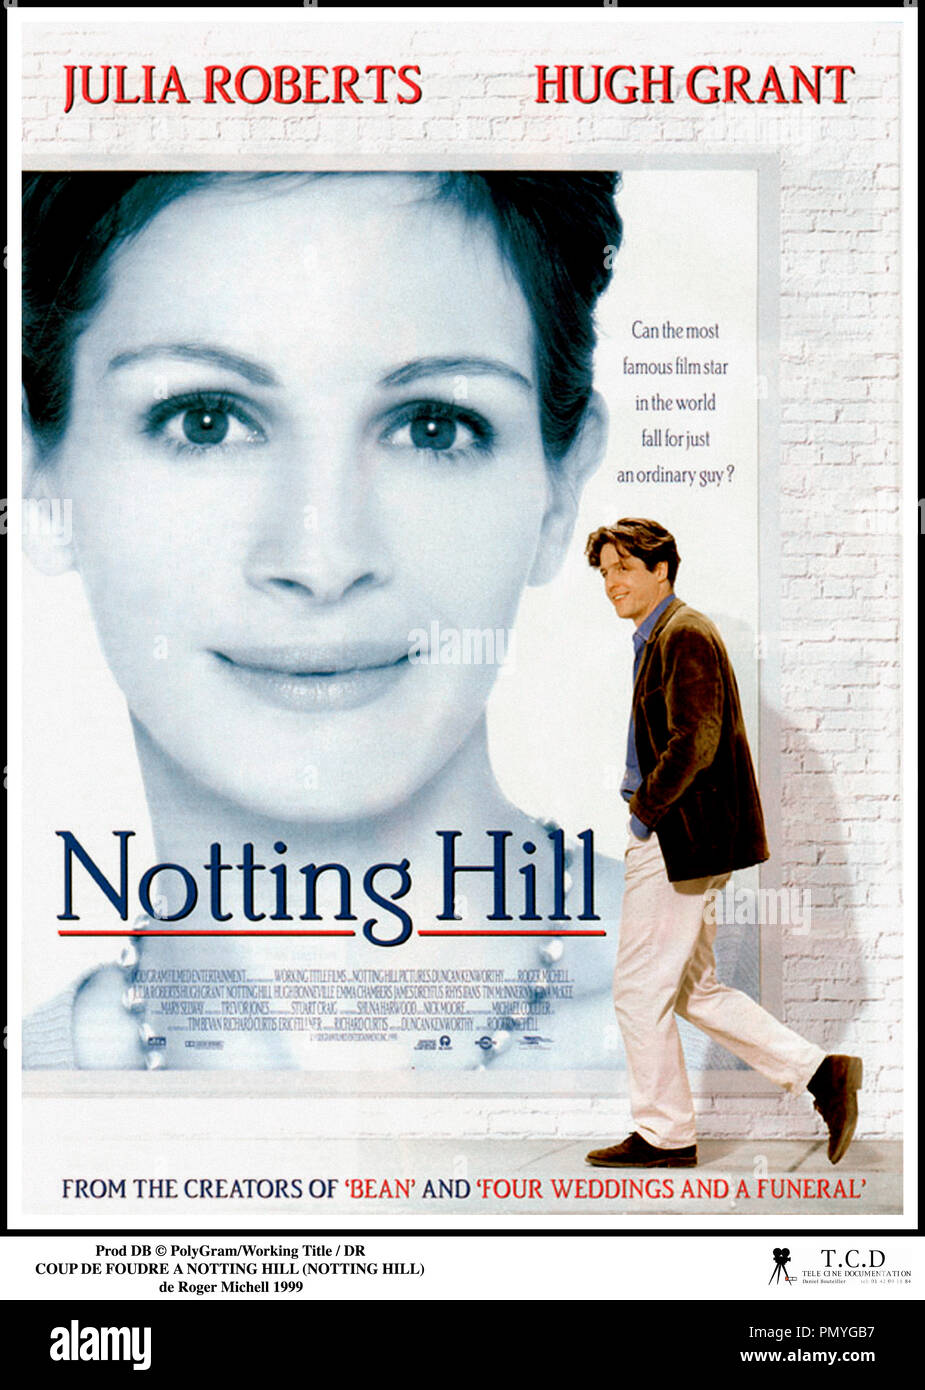 Prod DB © PolyGram/Working Title / DR COUP DE FOUDRE A NOTTING HILL (NOTTING HILL) de Roger Michell 1999 GB affiche - Stock Image